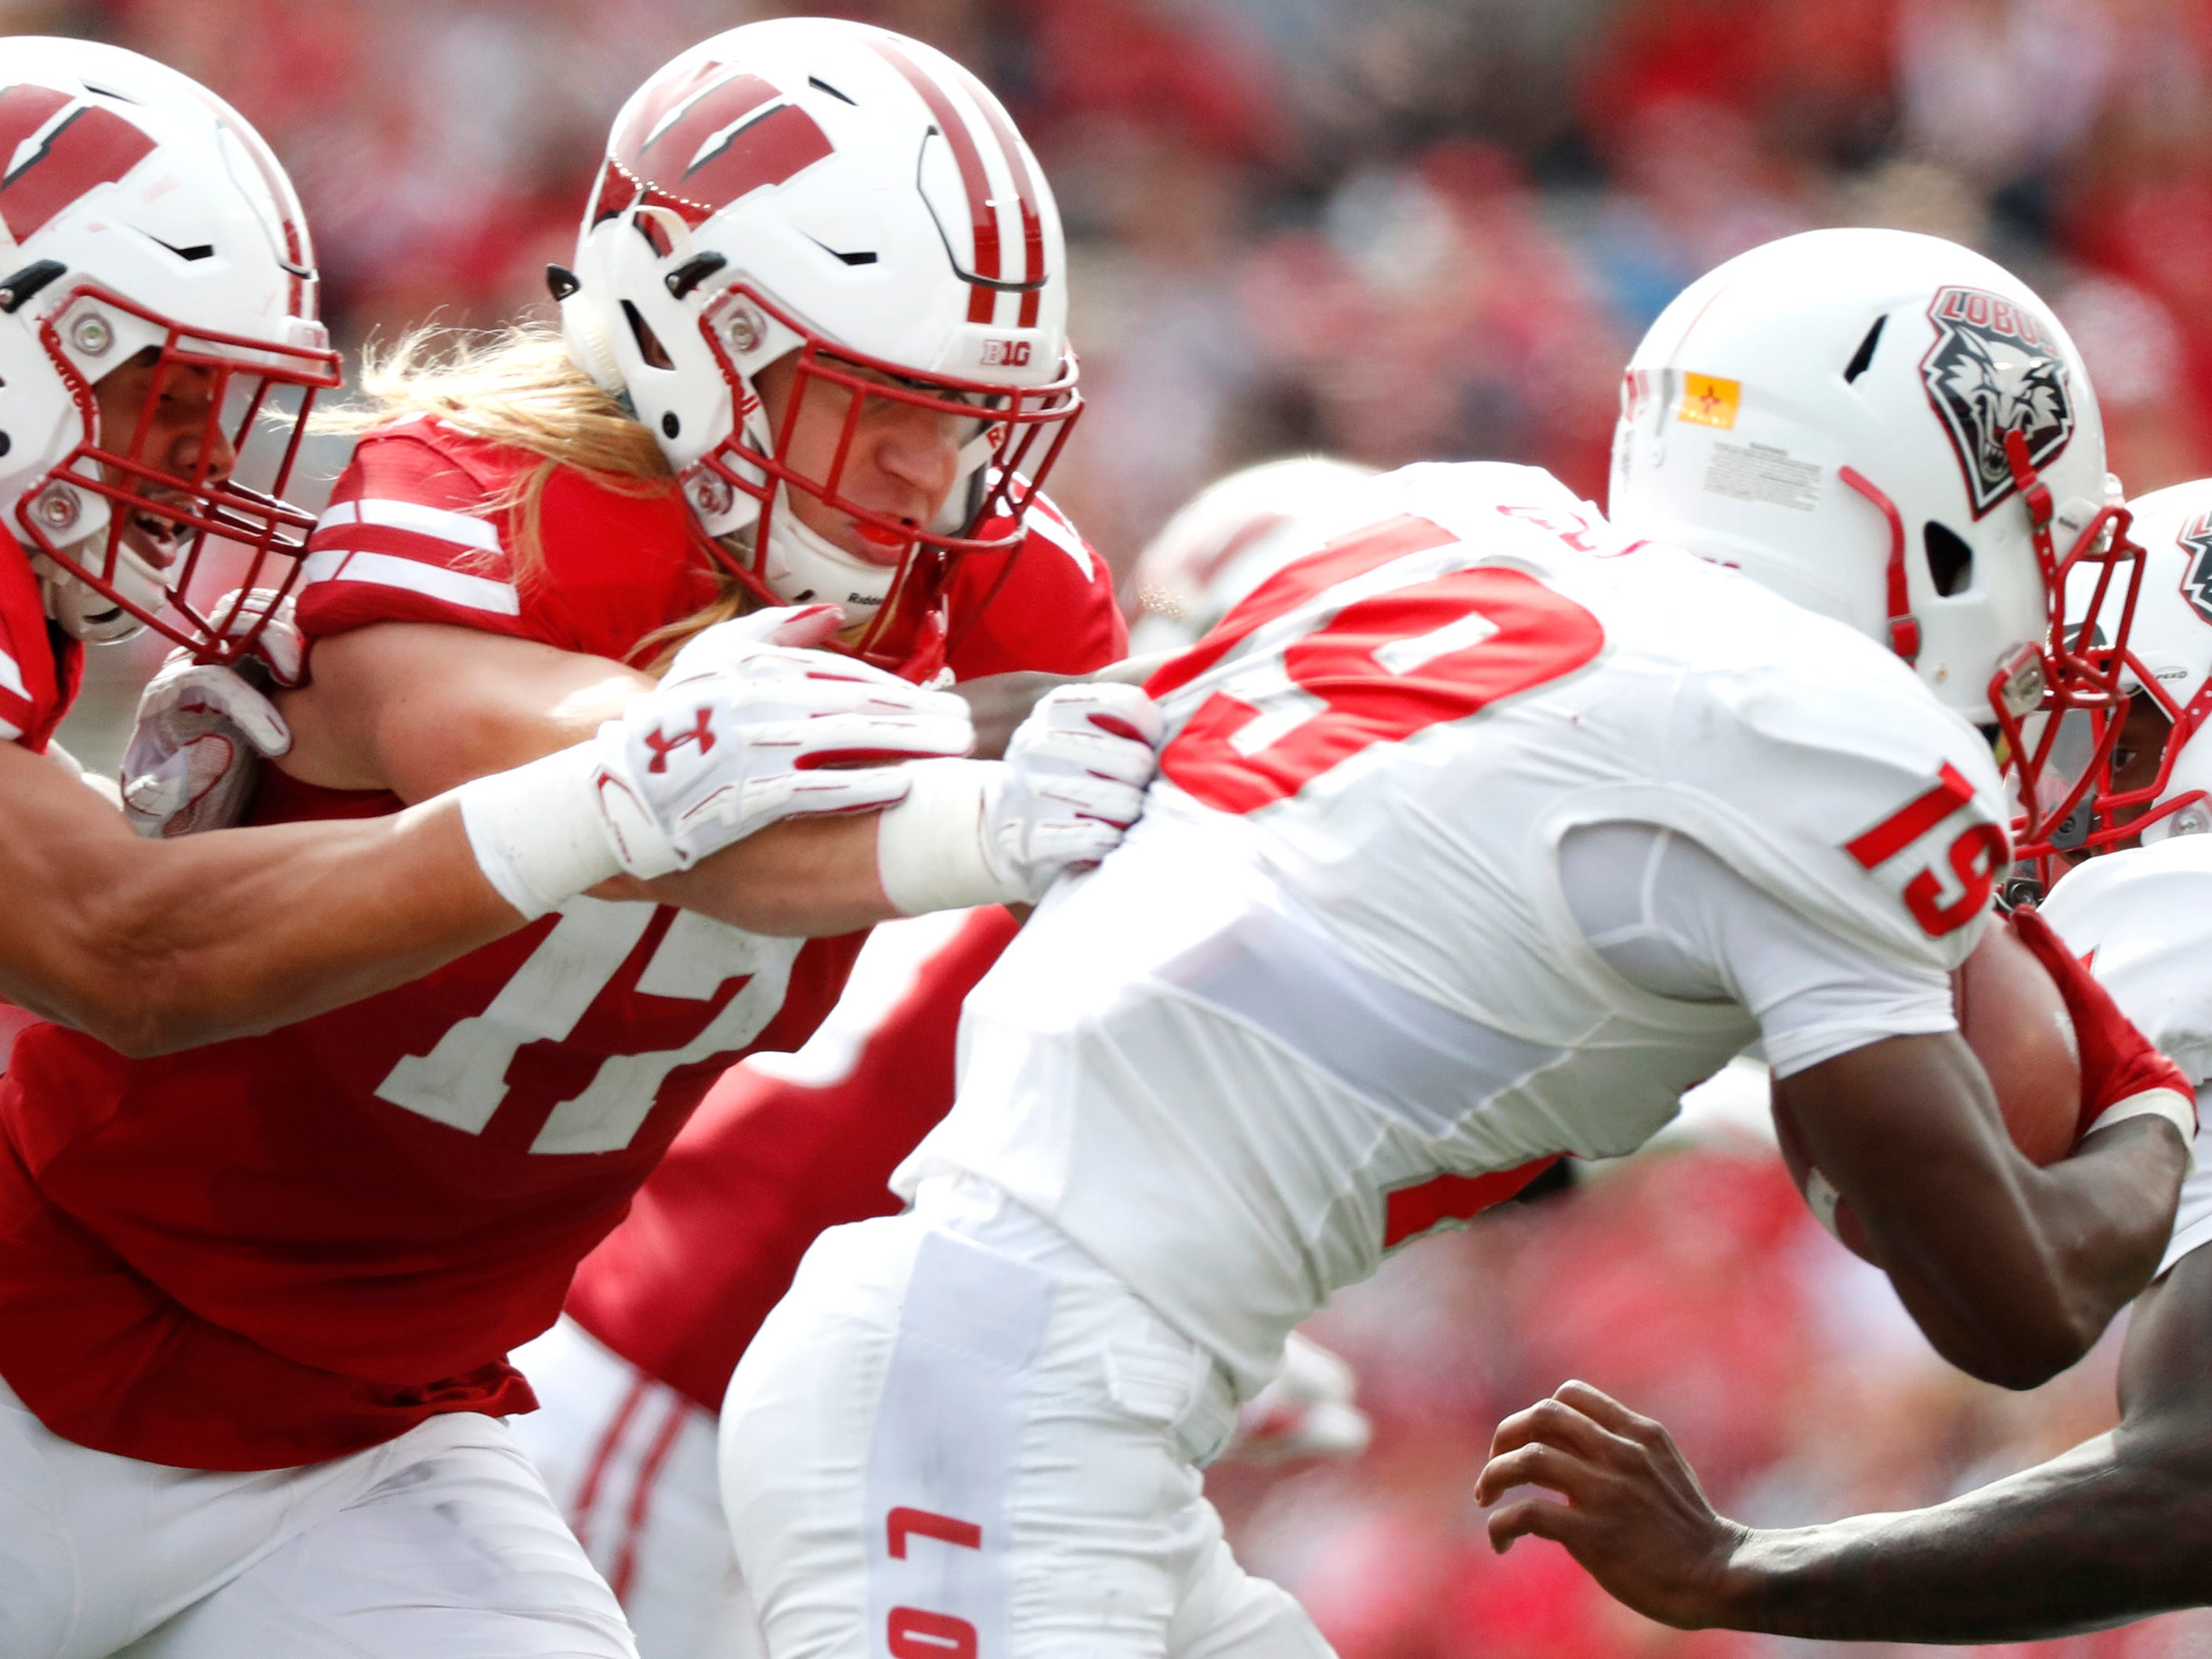 Wisconsin linebacker Zack Baun and Wisconsin linebacker Andrew Van Ginkel work to bring New Mexico wide receiver Elijah Lilly.